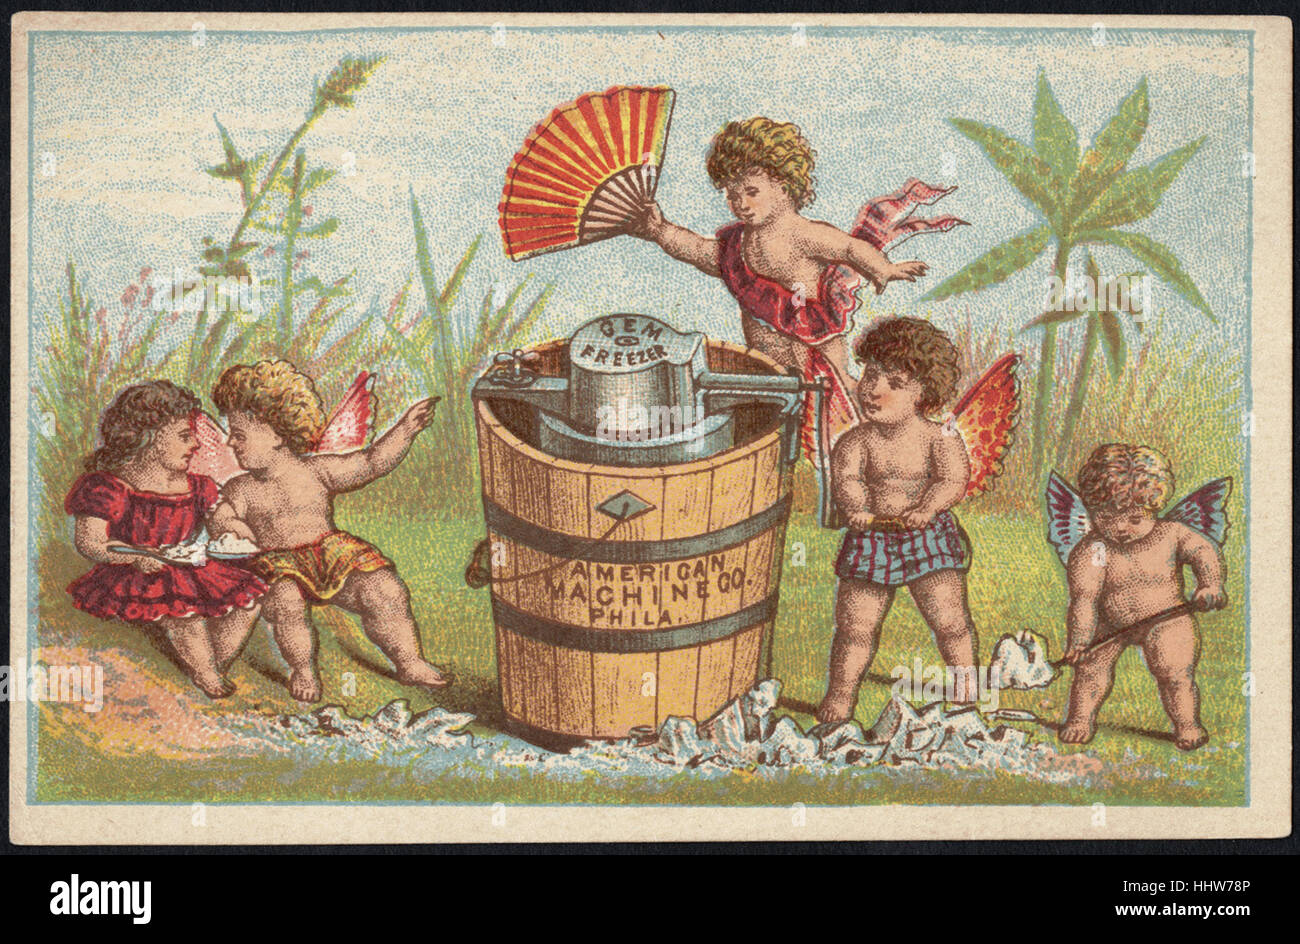 American Machine Co., Phila. The Gem Ice Cream Freezer. (front)  - Home Furnishings Trade Cards - Stock Image